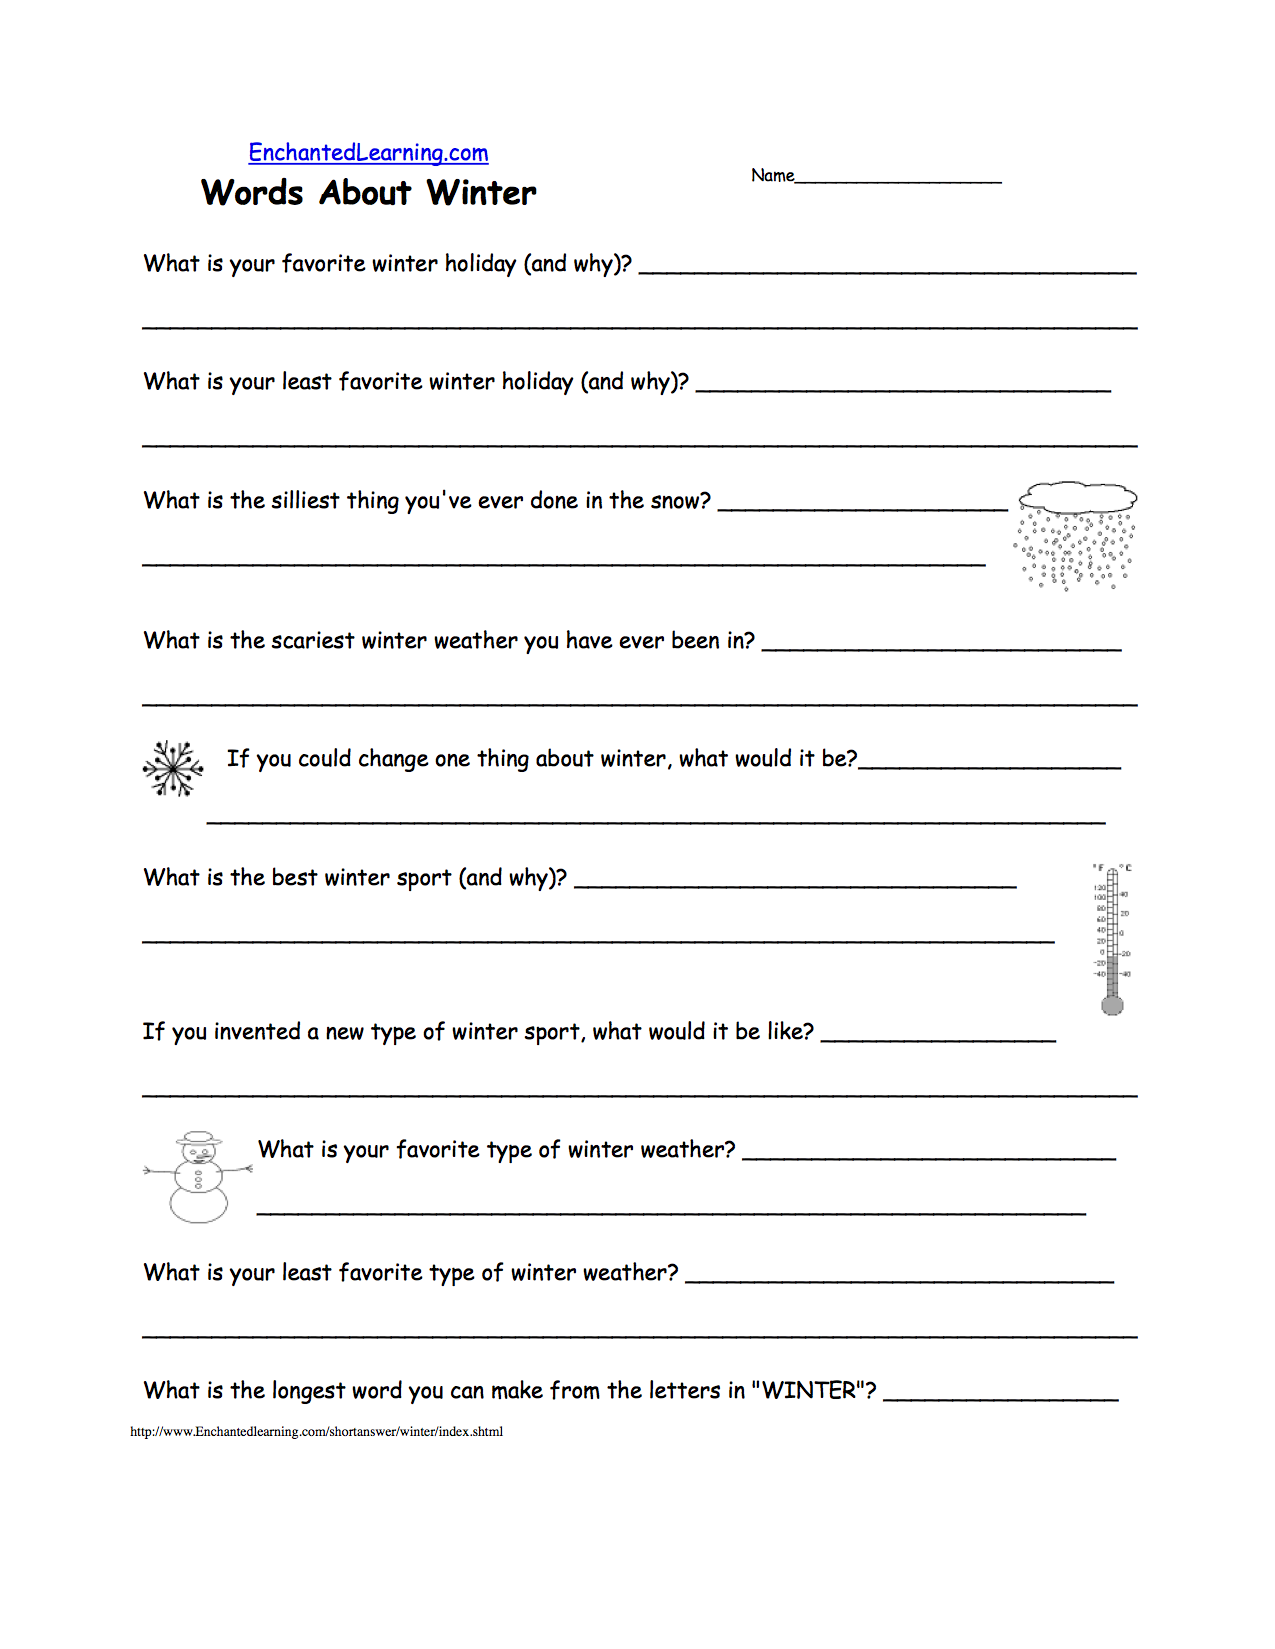 Short Answer Quizzes Printable EnchantedLearning – Parts of Speech Worksheets Middle School